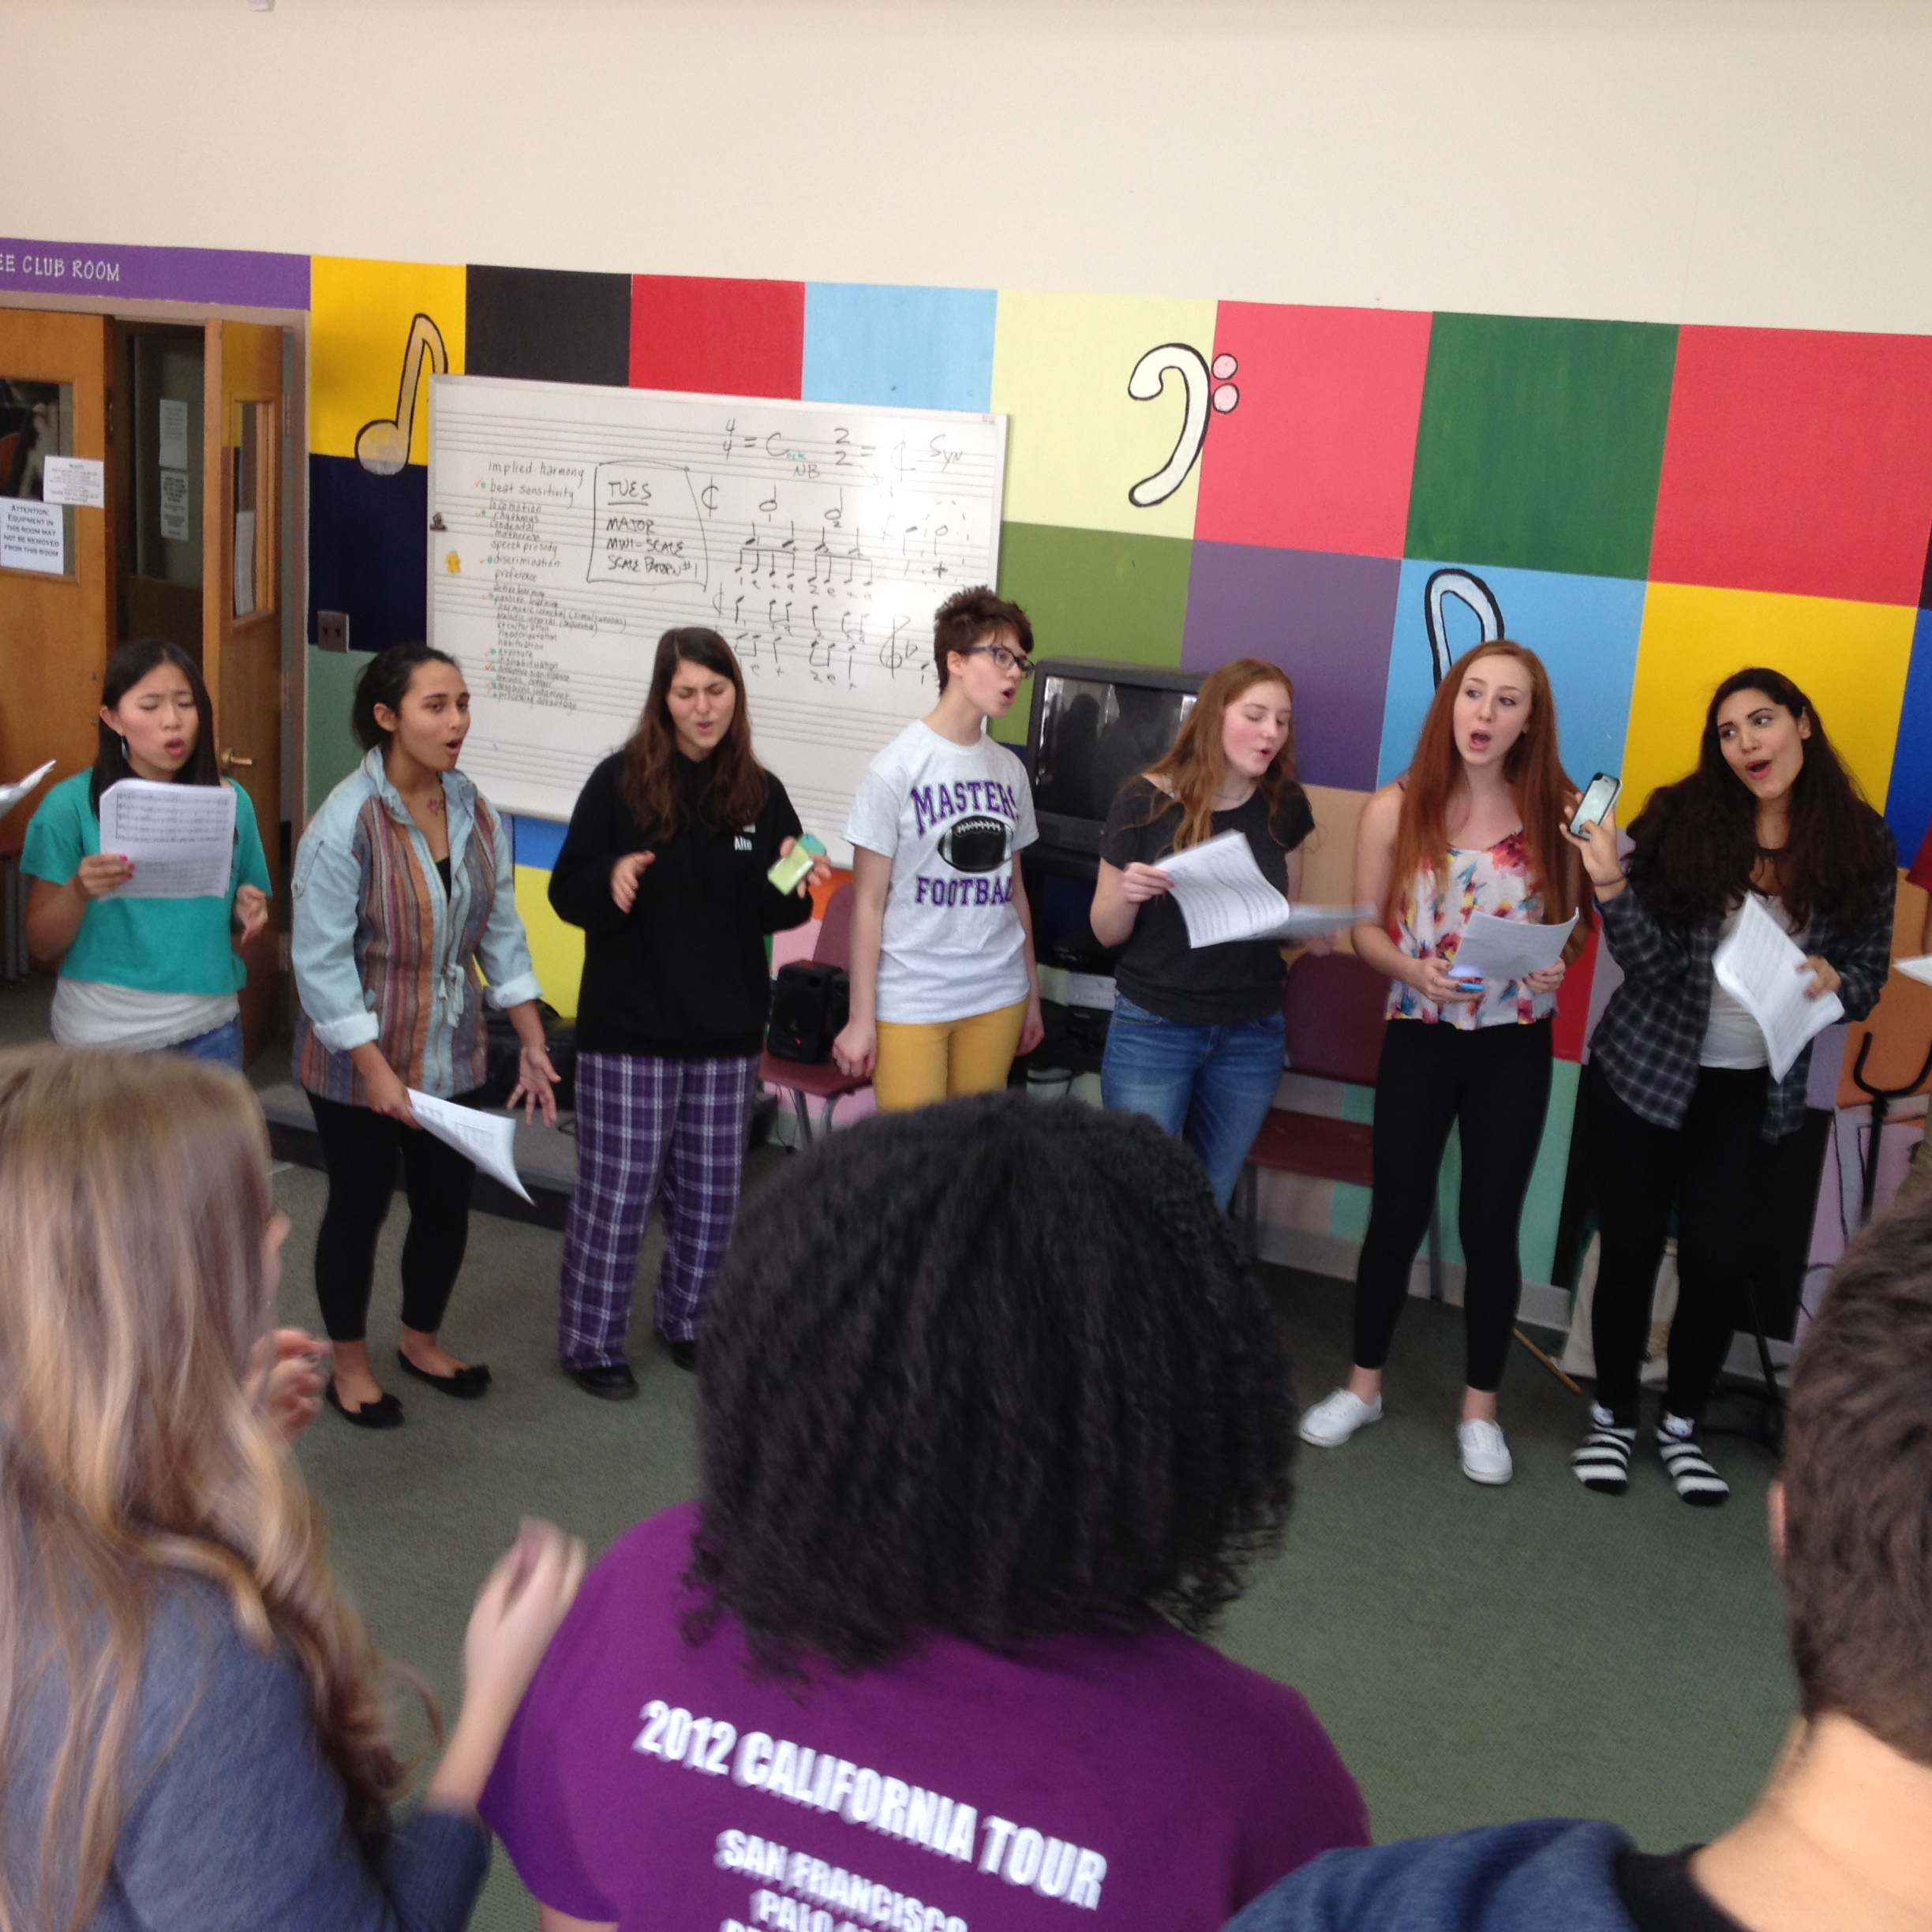 D16 Workshop with Pitchslapped 10/15